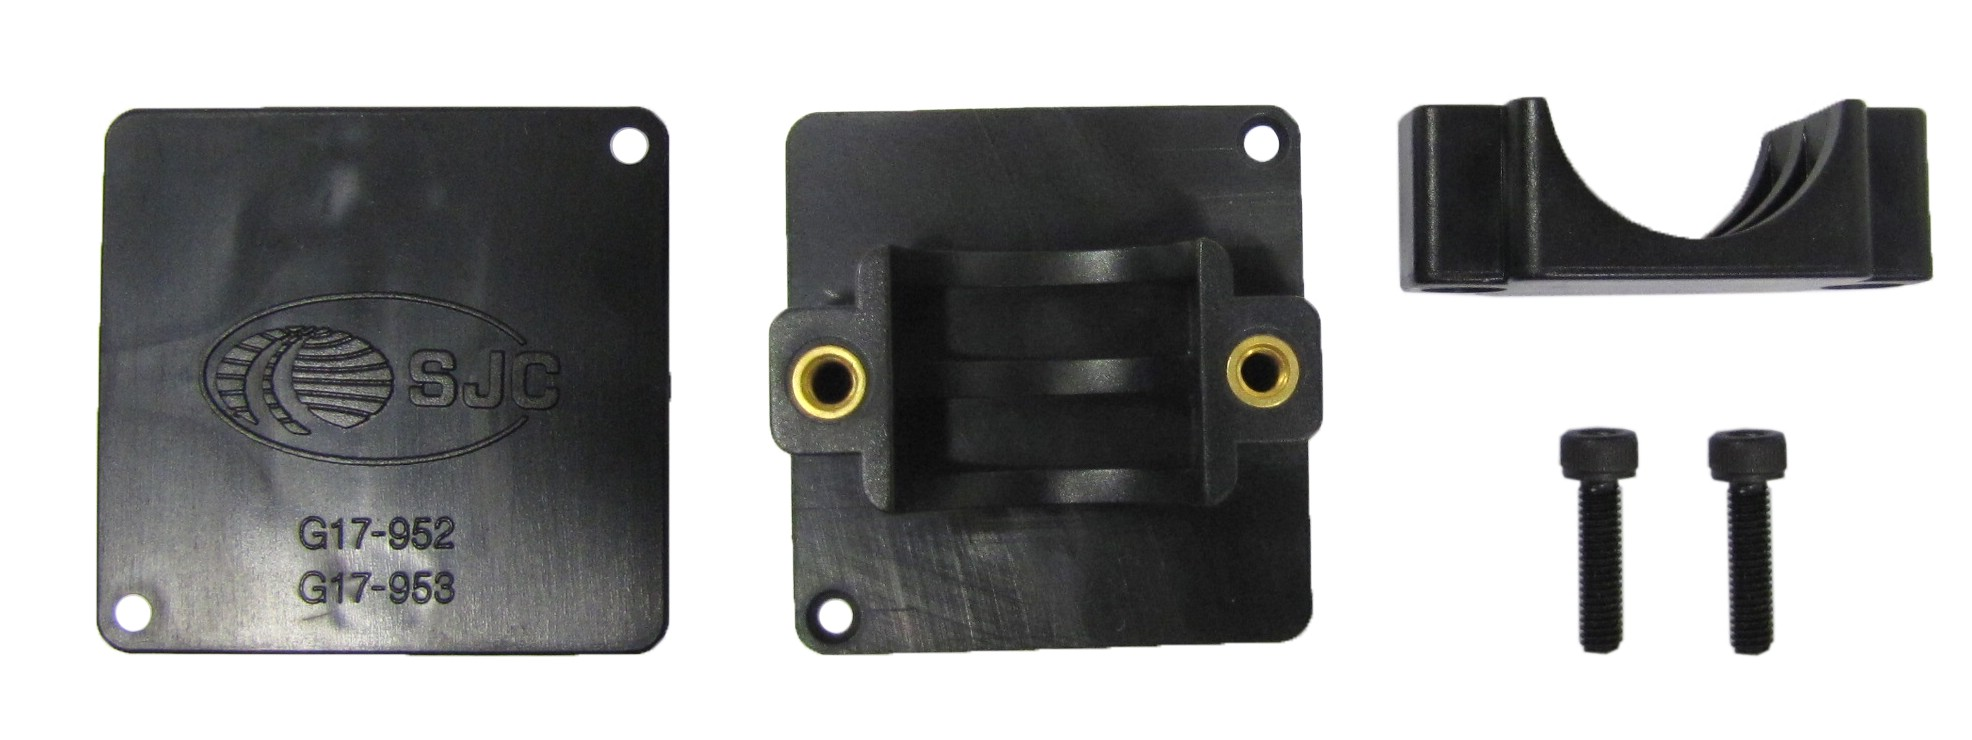 "Pair Grips Heated Control Unit Bracket For 7//8/""Handlebars"